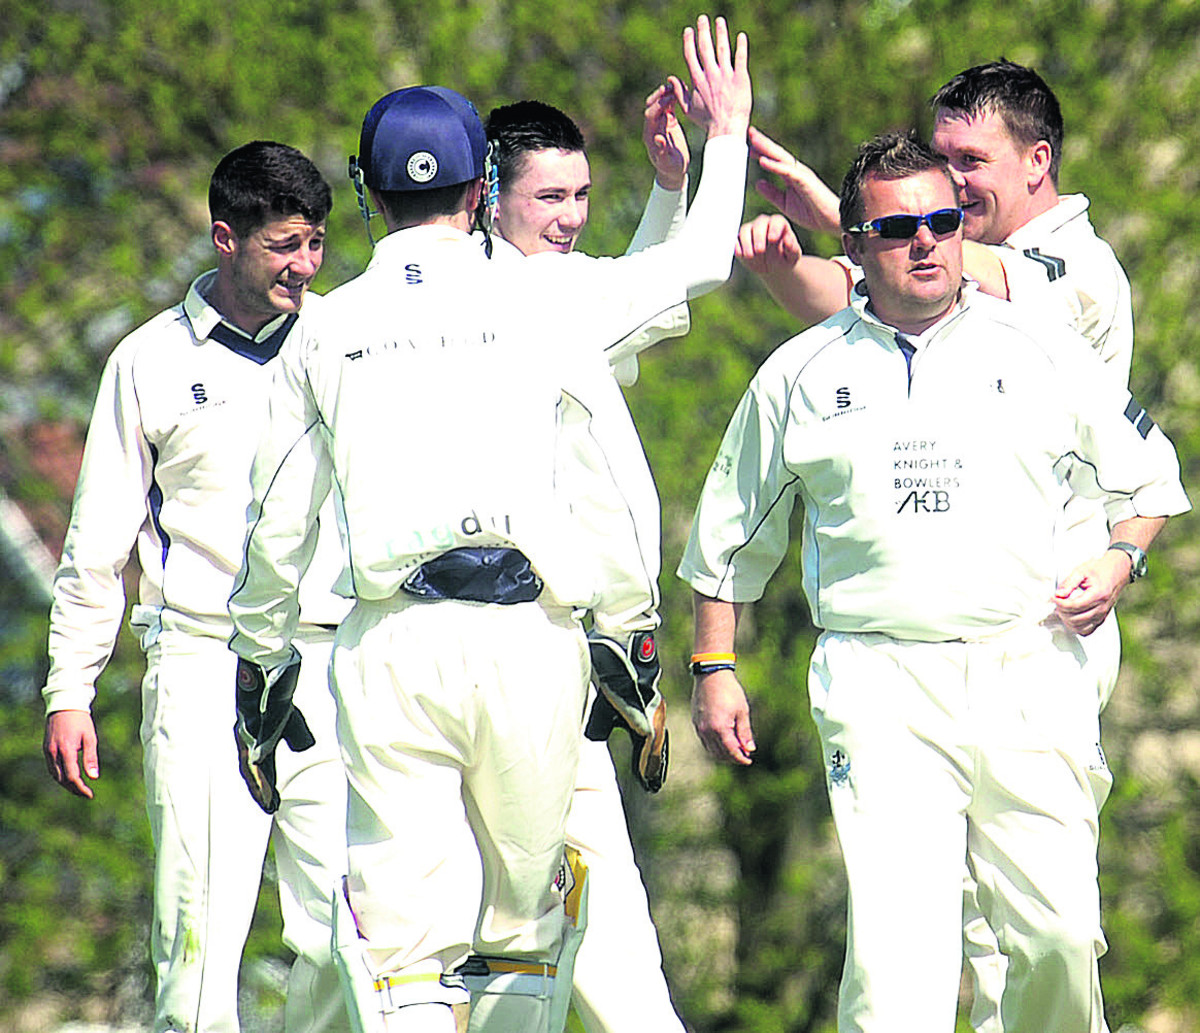 Box celebrate after Dave Crawford captured the wicket of Urchfont's Joe Dorgan during their Division One clash on Saturday